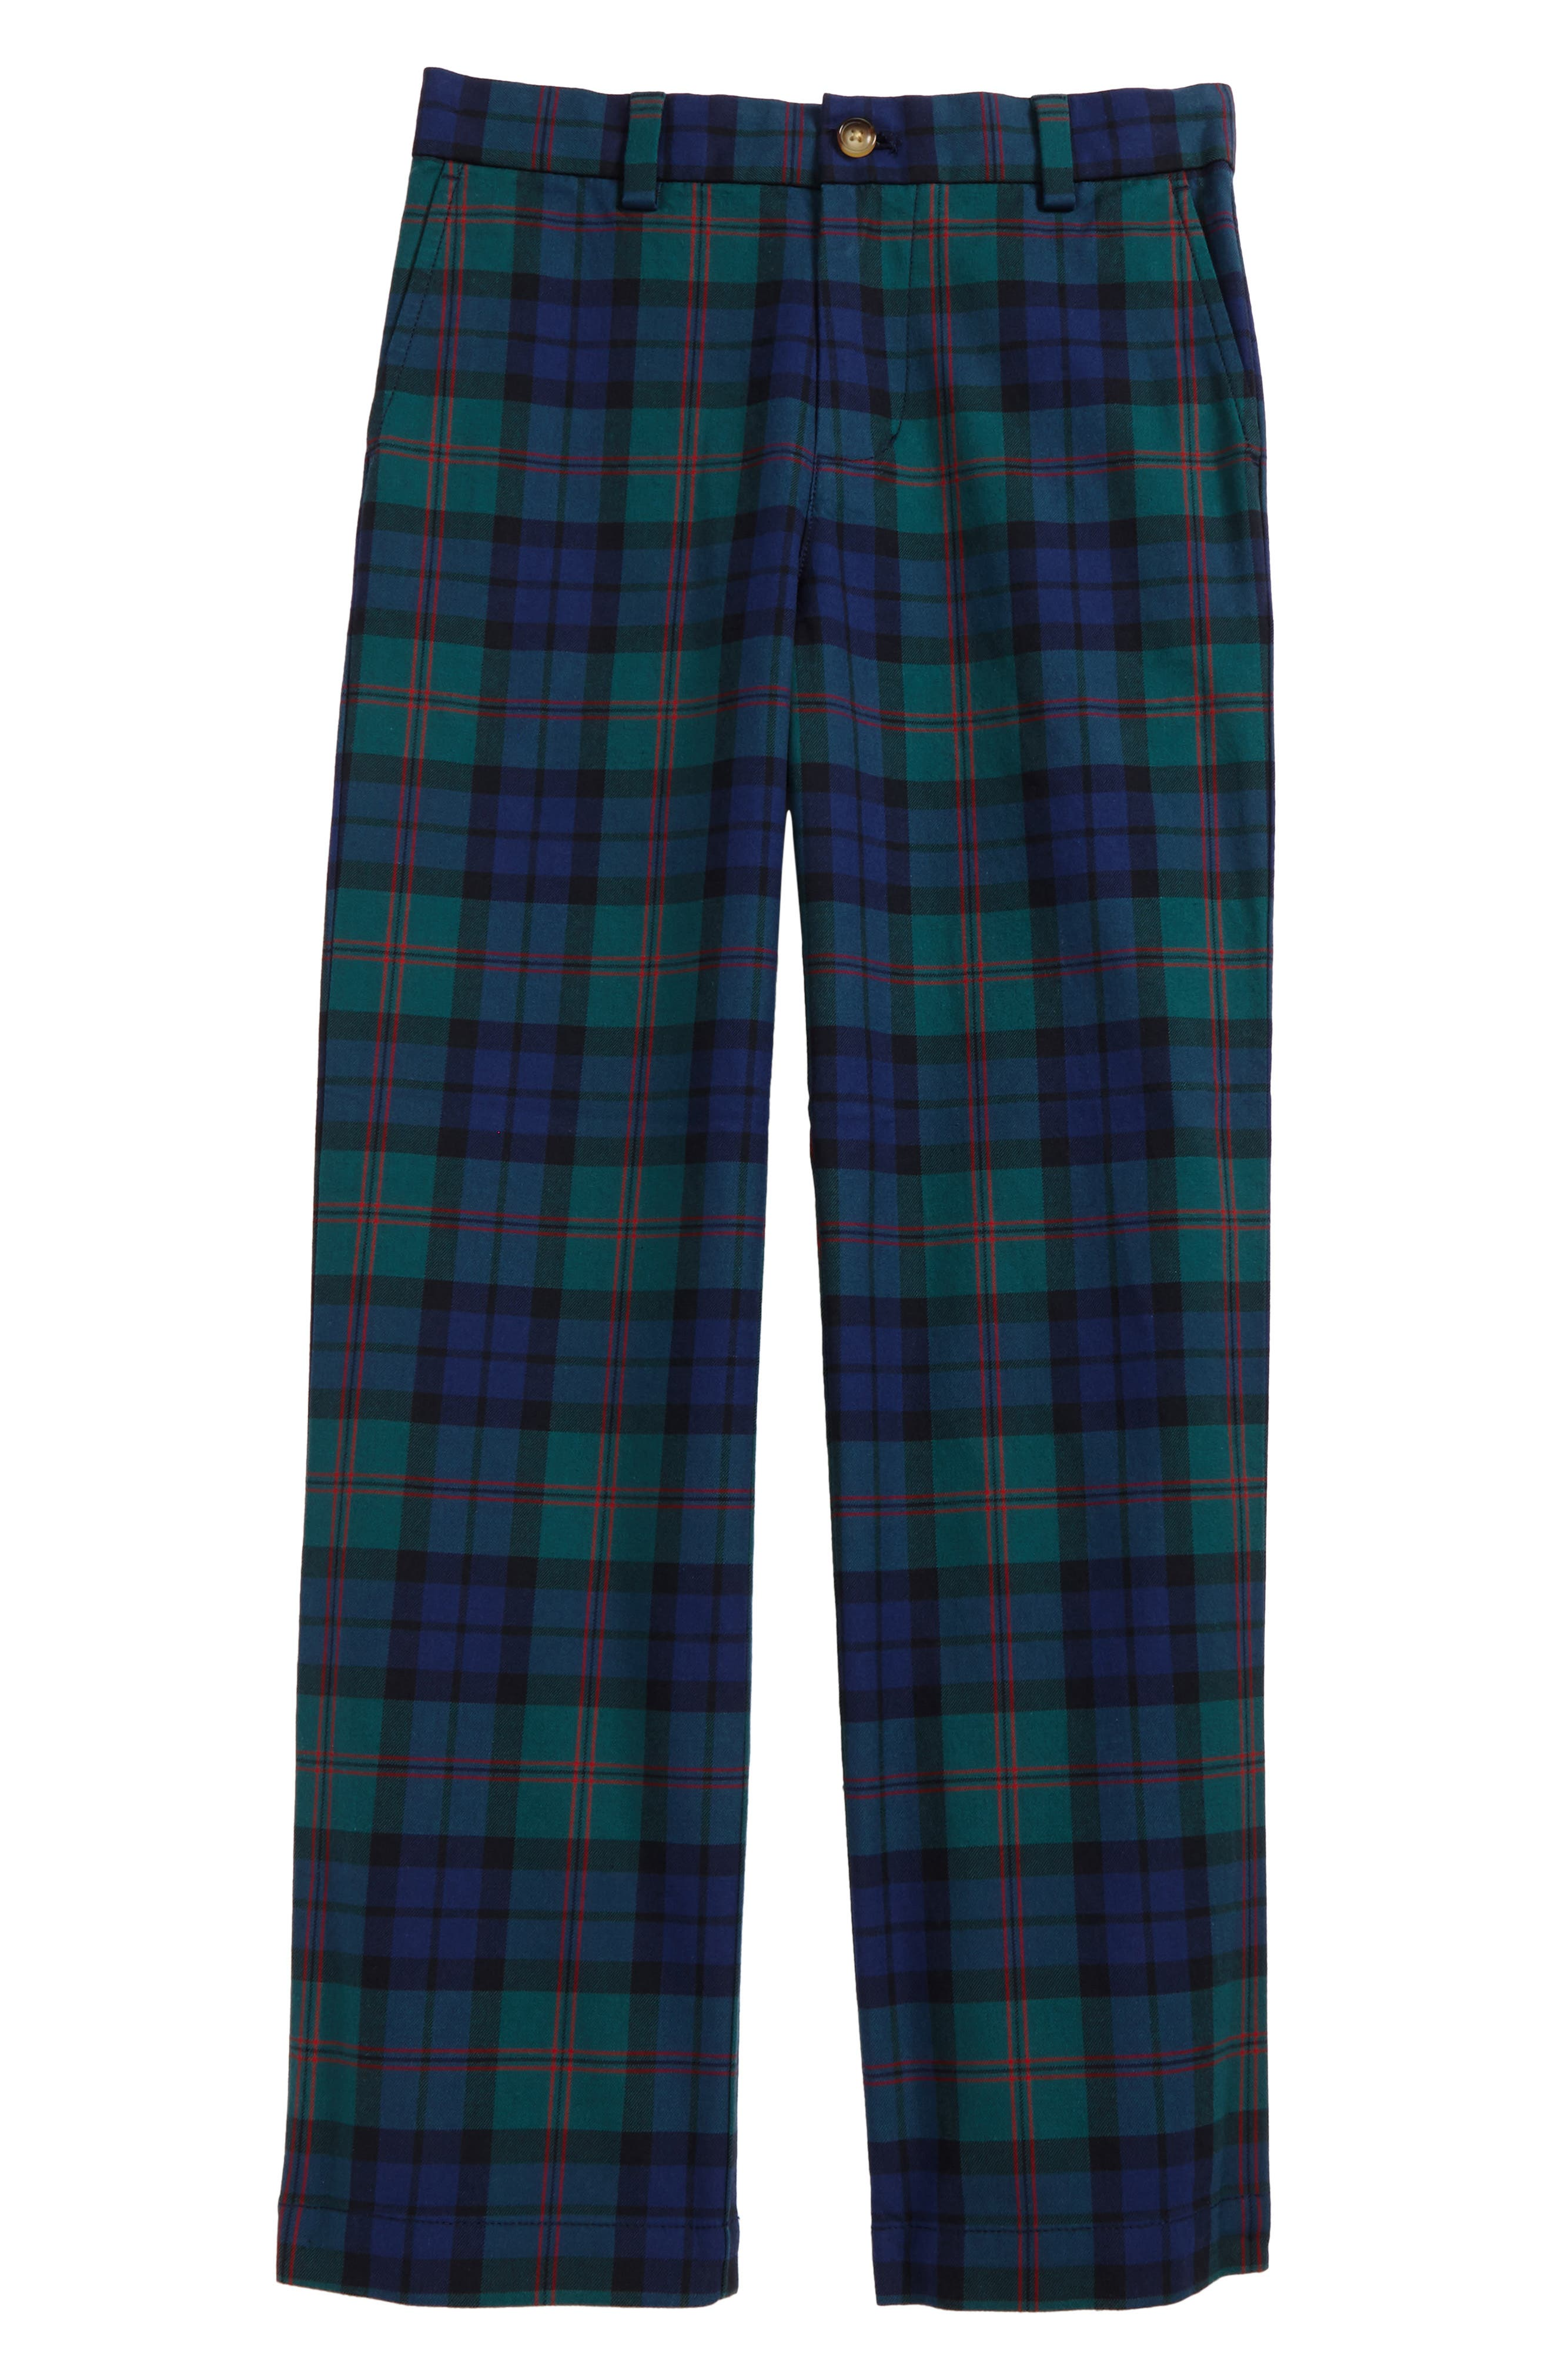 Holiday Black Watch Plaid Pants,                             Main thumbnail 1, color,                             Charleston Green